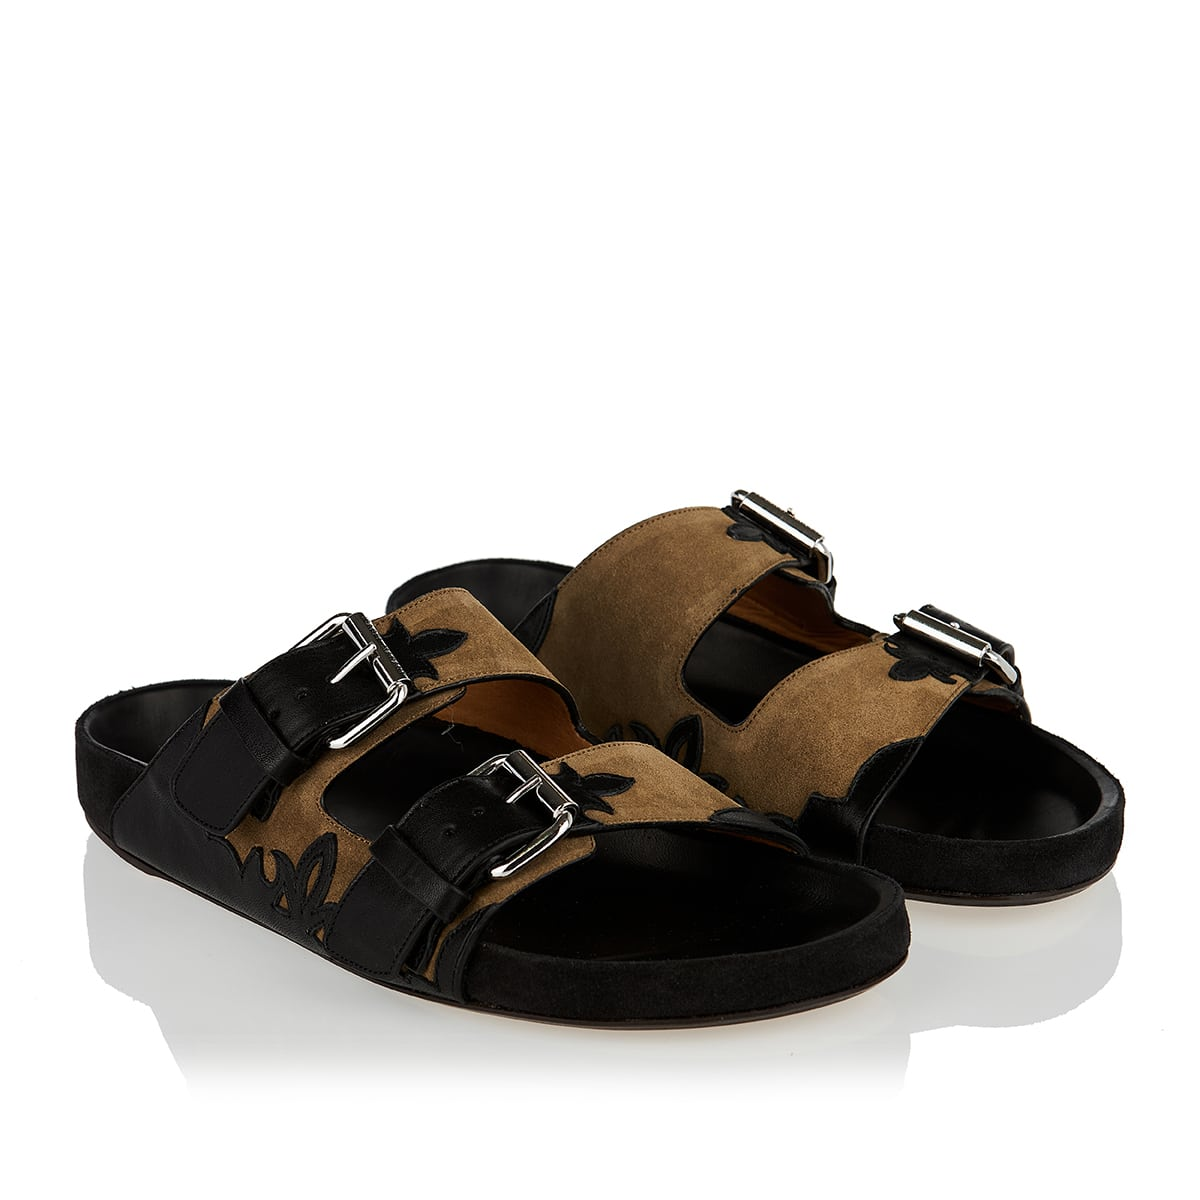 Lennyo suede and leather slides